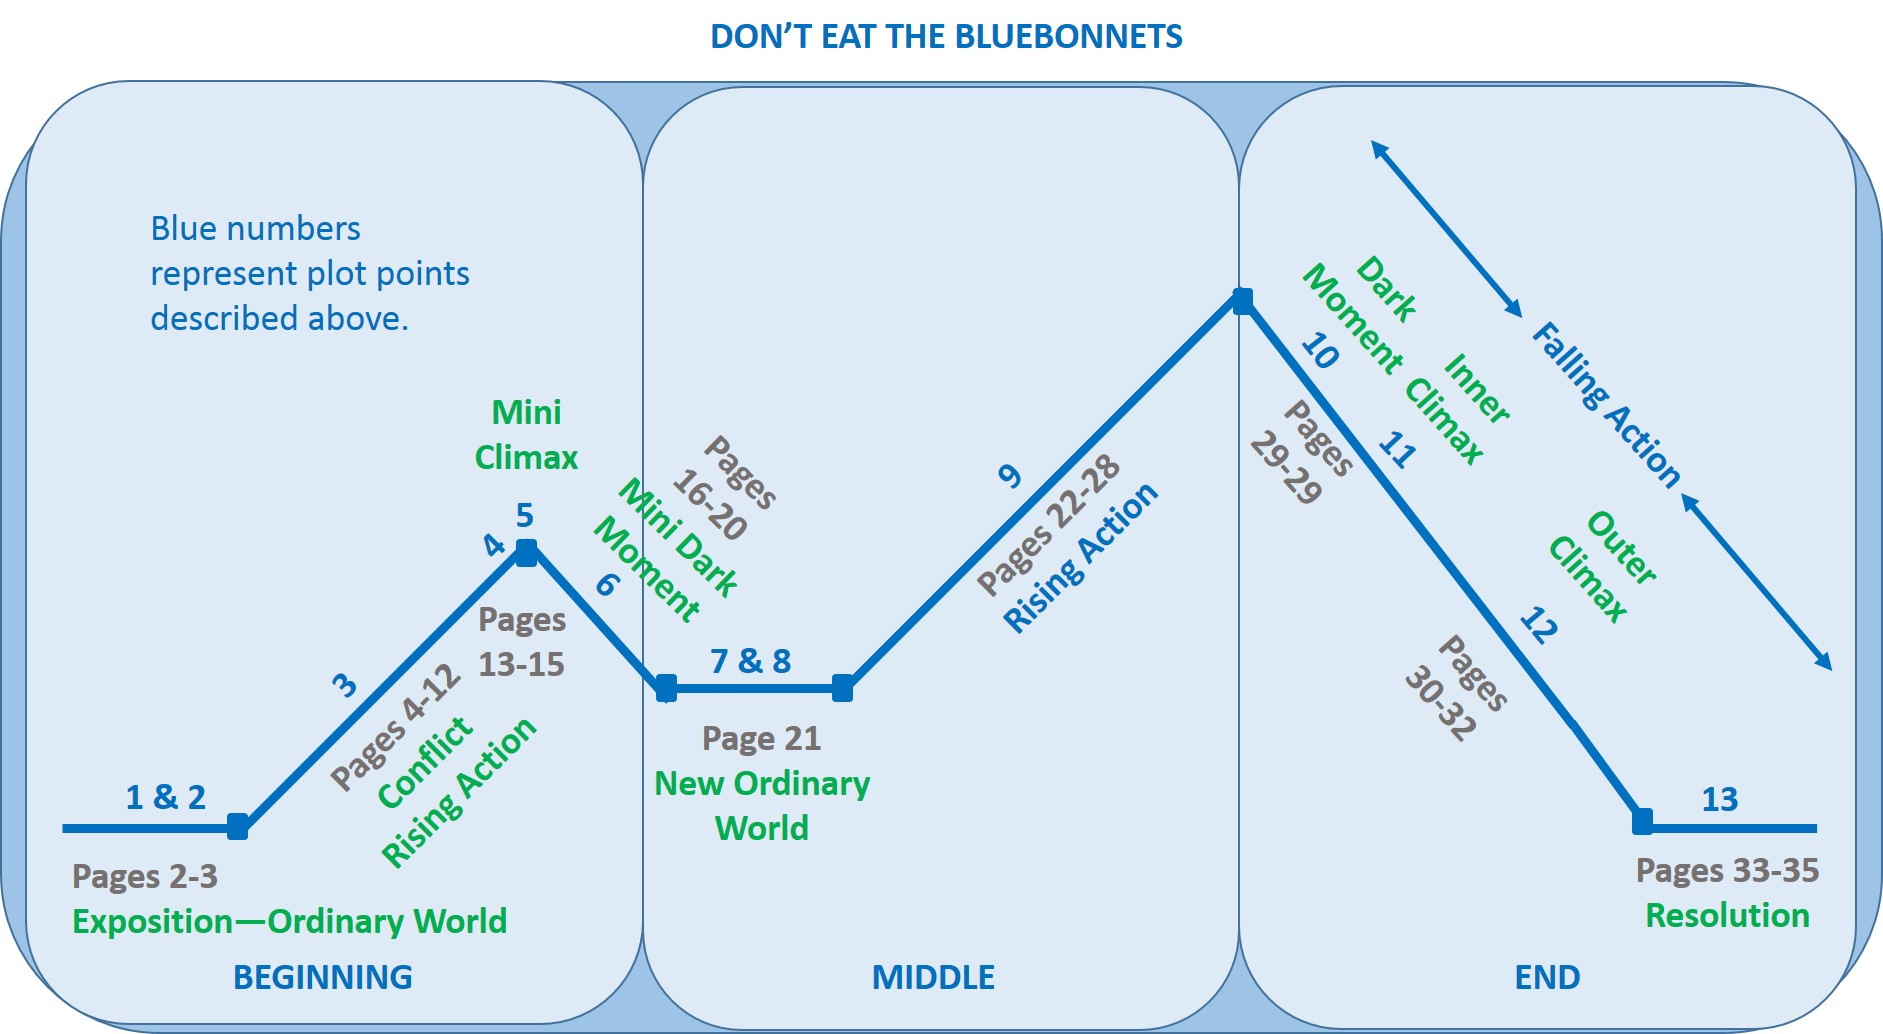 Don't eact the bluebonnets diagram arc